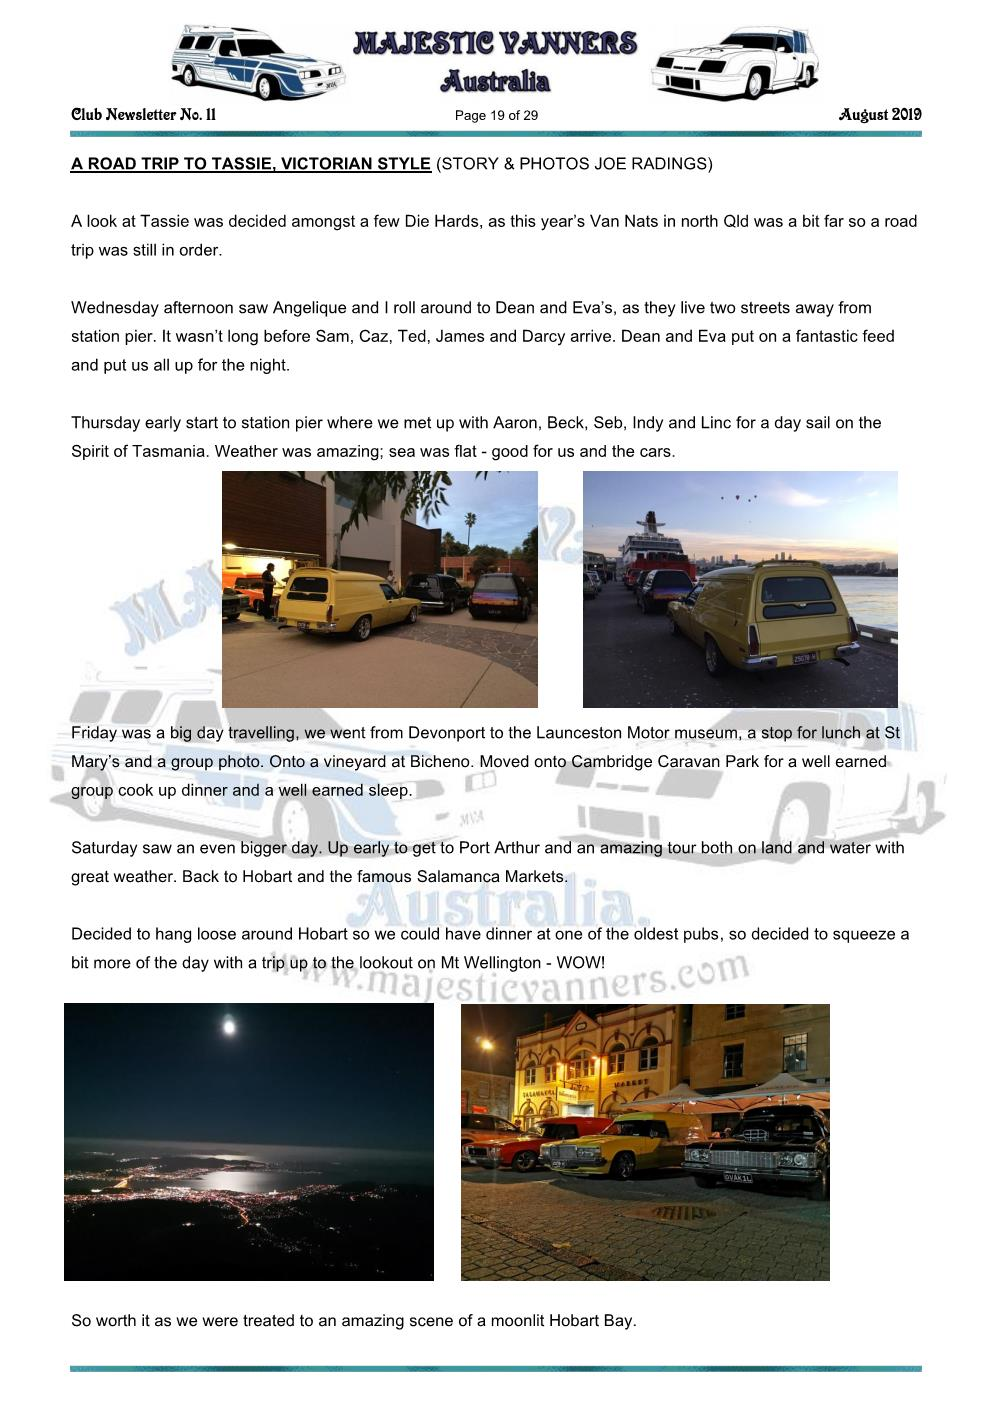 MAJESTIC VANNERS Newsletter Issue No: 11 August 2019 Mv_new57